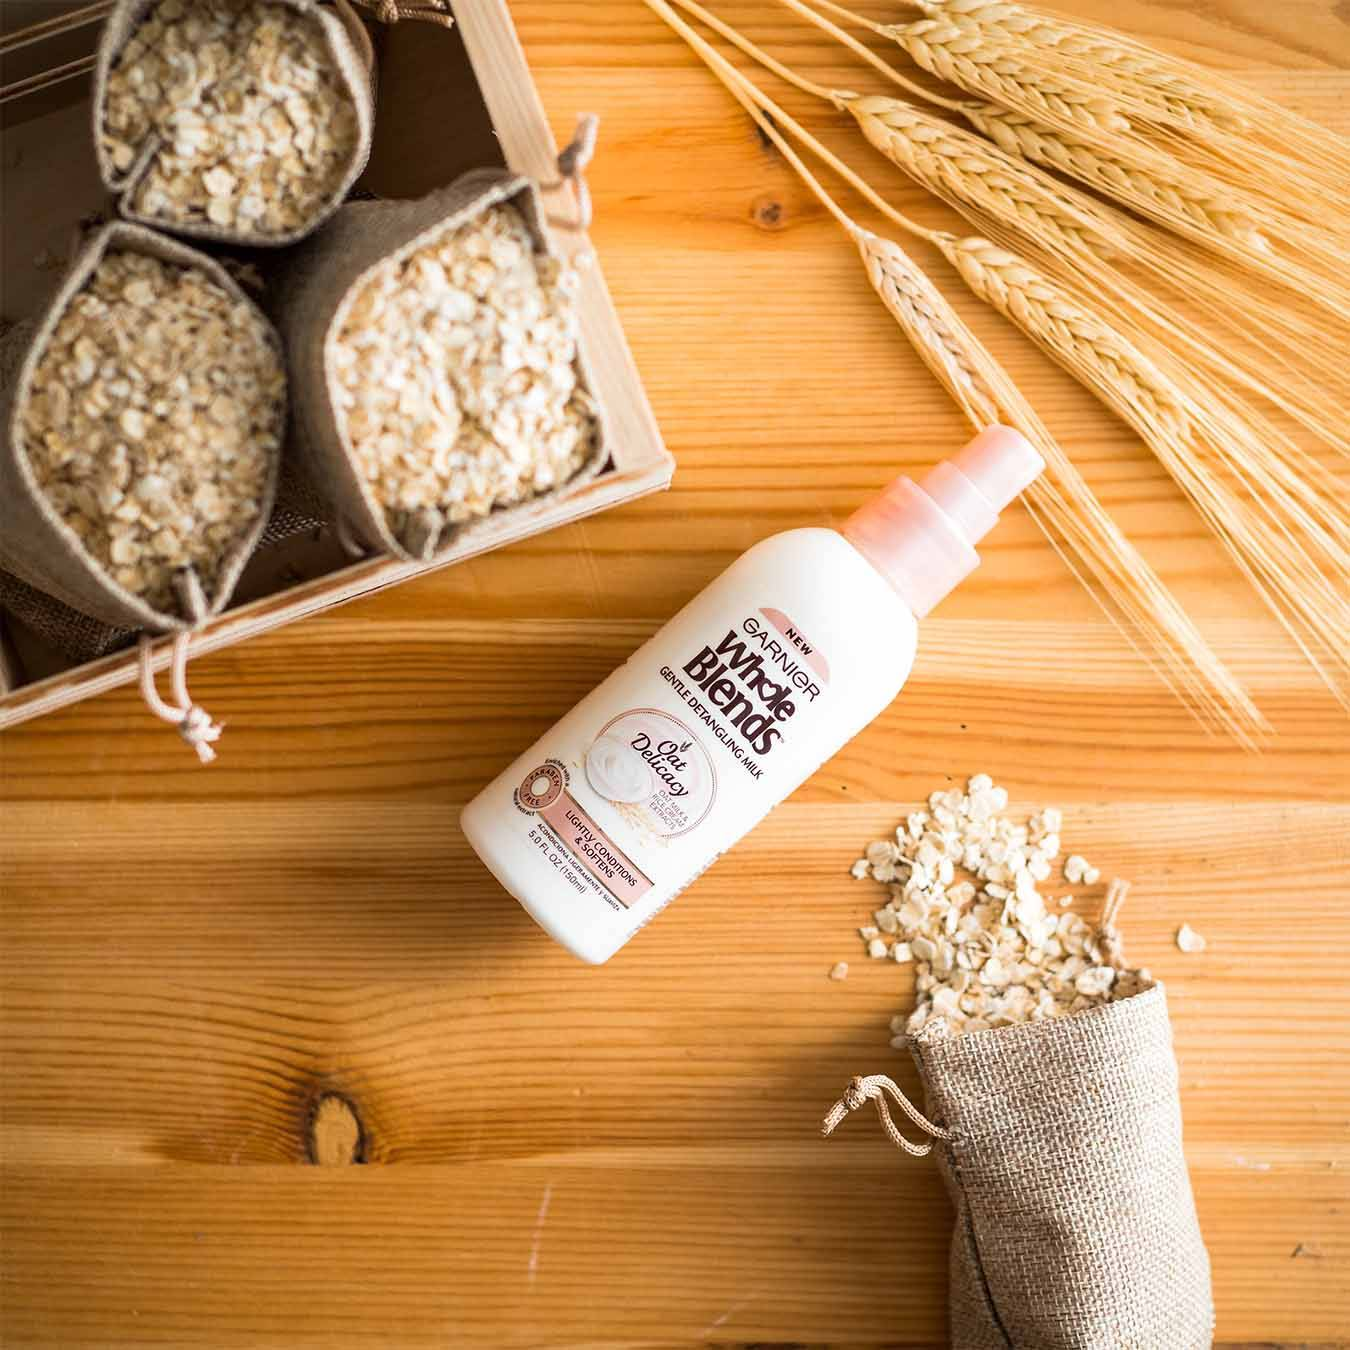 Whole Blends Oat Delicacy Gentle Detangling Milk on a wooden table with wheat stalks and a crate of small burlap sacks of oats, one of which has spilled.